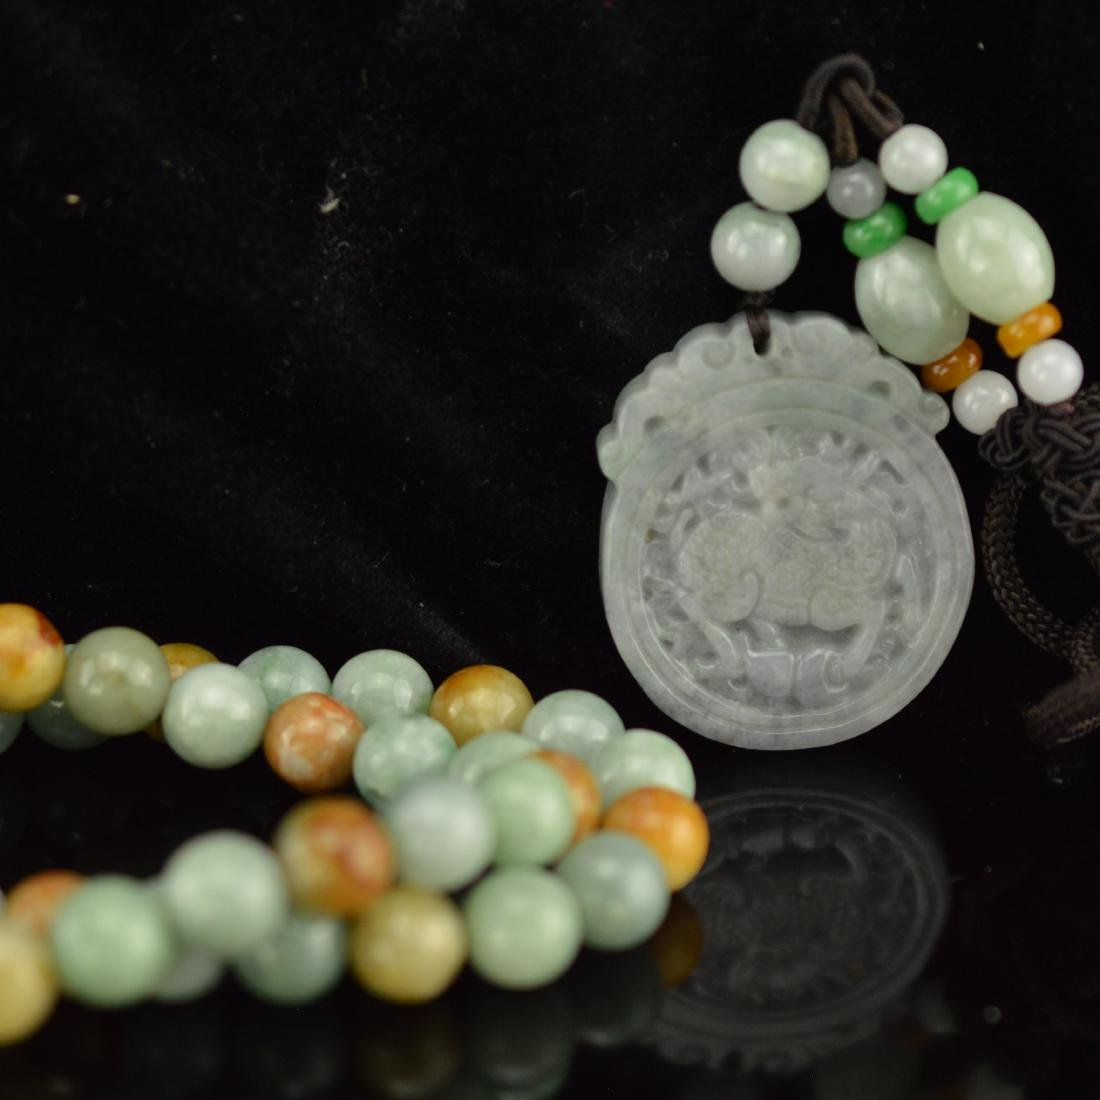 Jade pendant and two jadeite bracelet